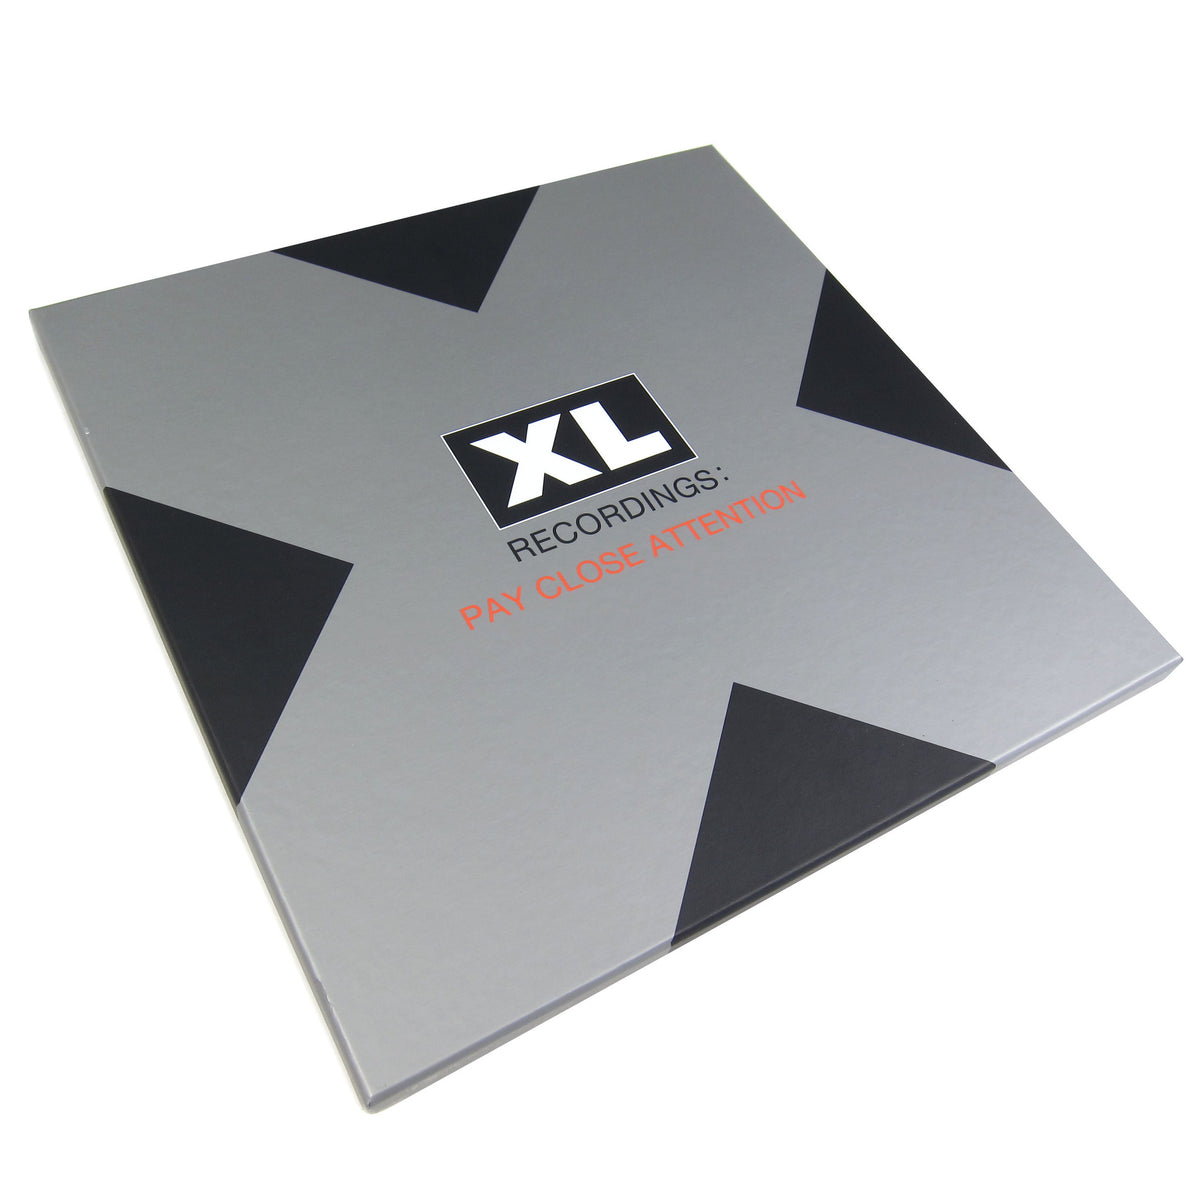 XL Recordings: Pay Close Attention Vinyl 4LP Boxset